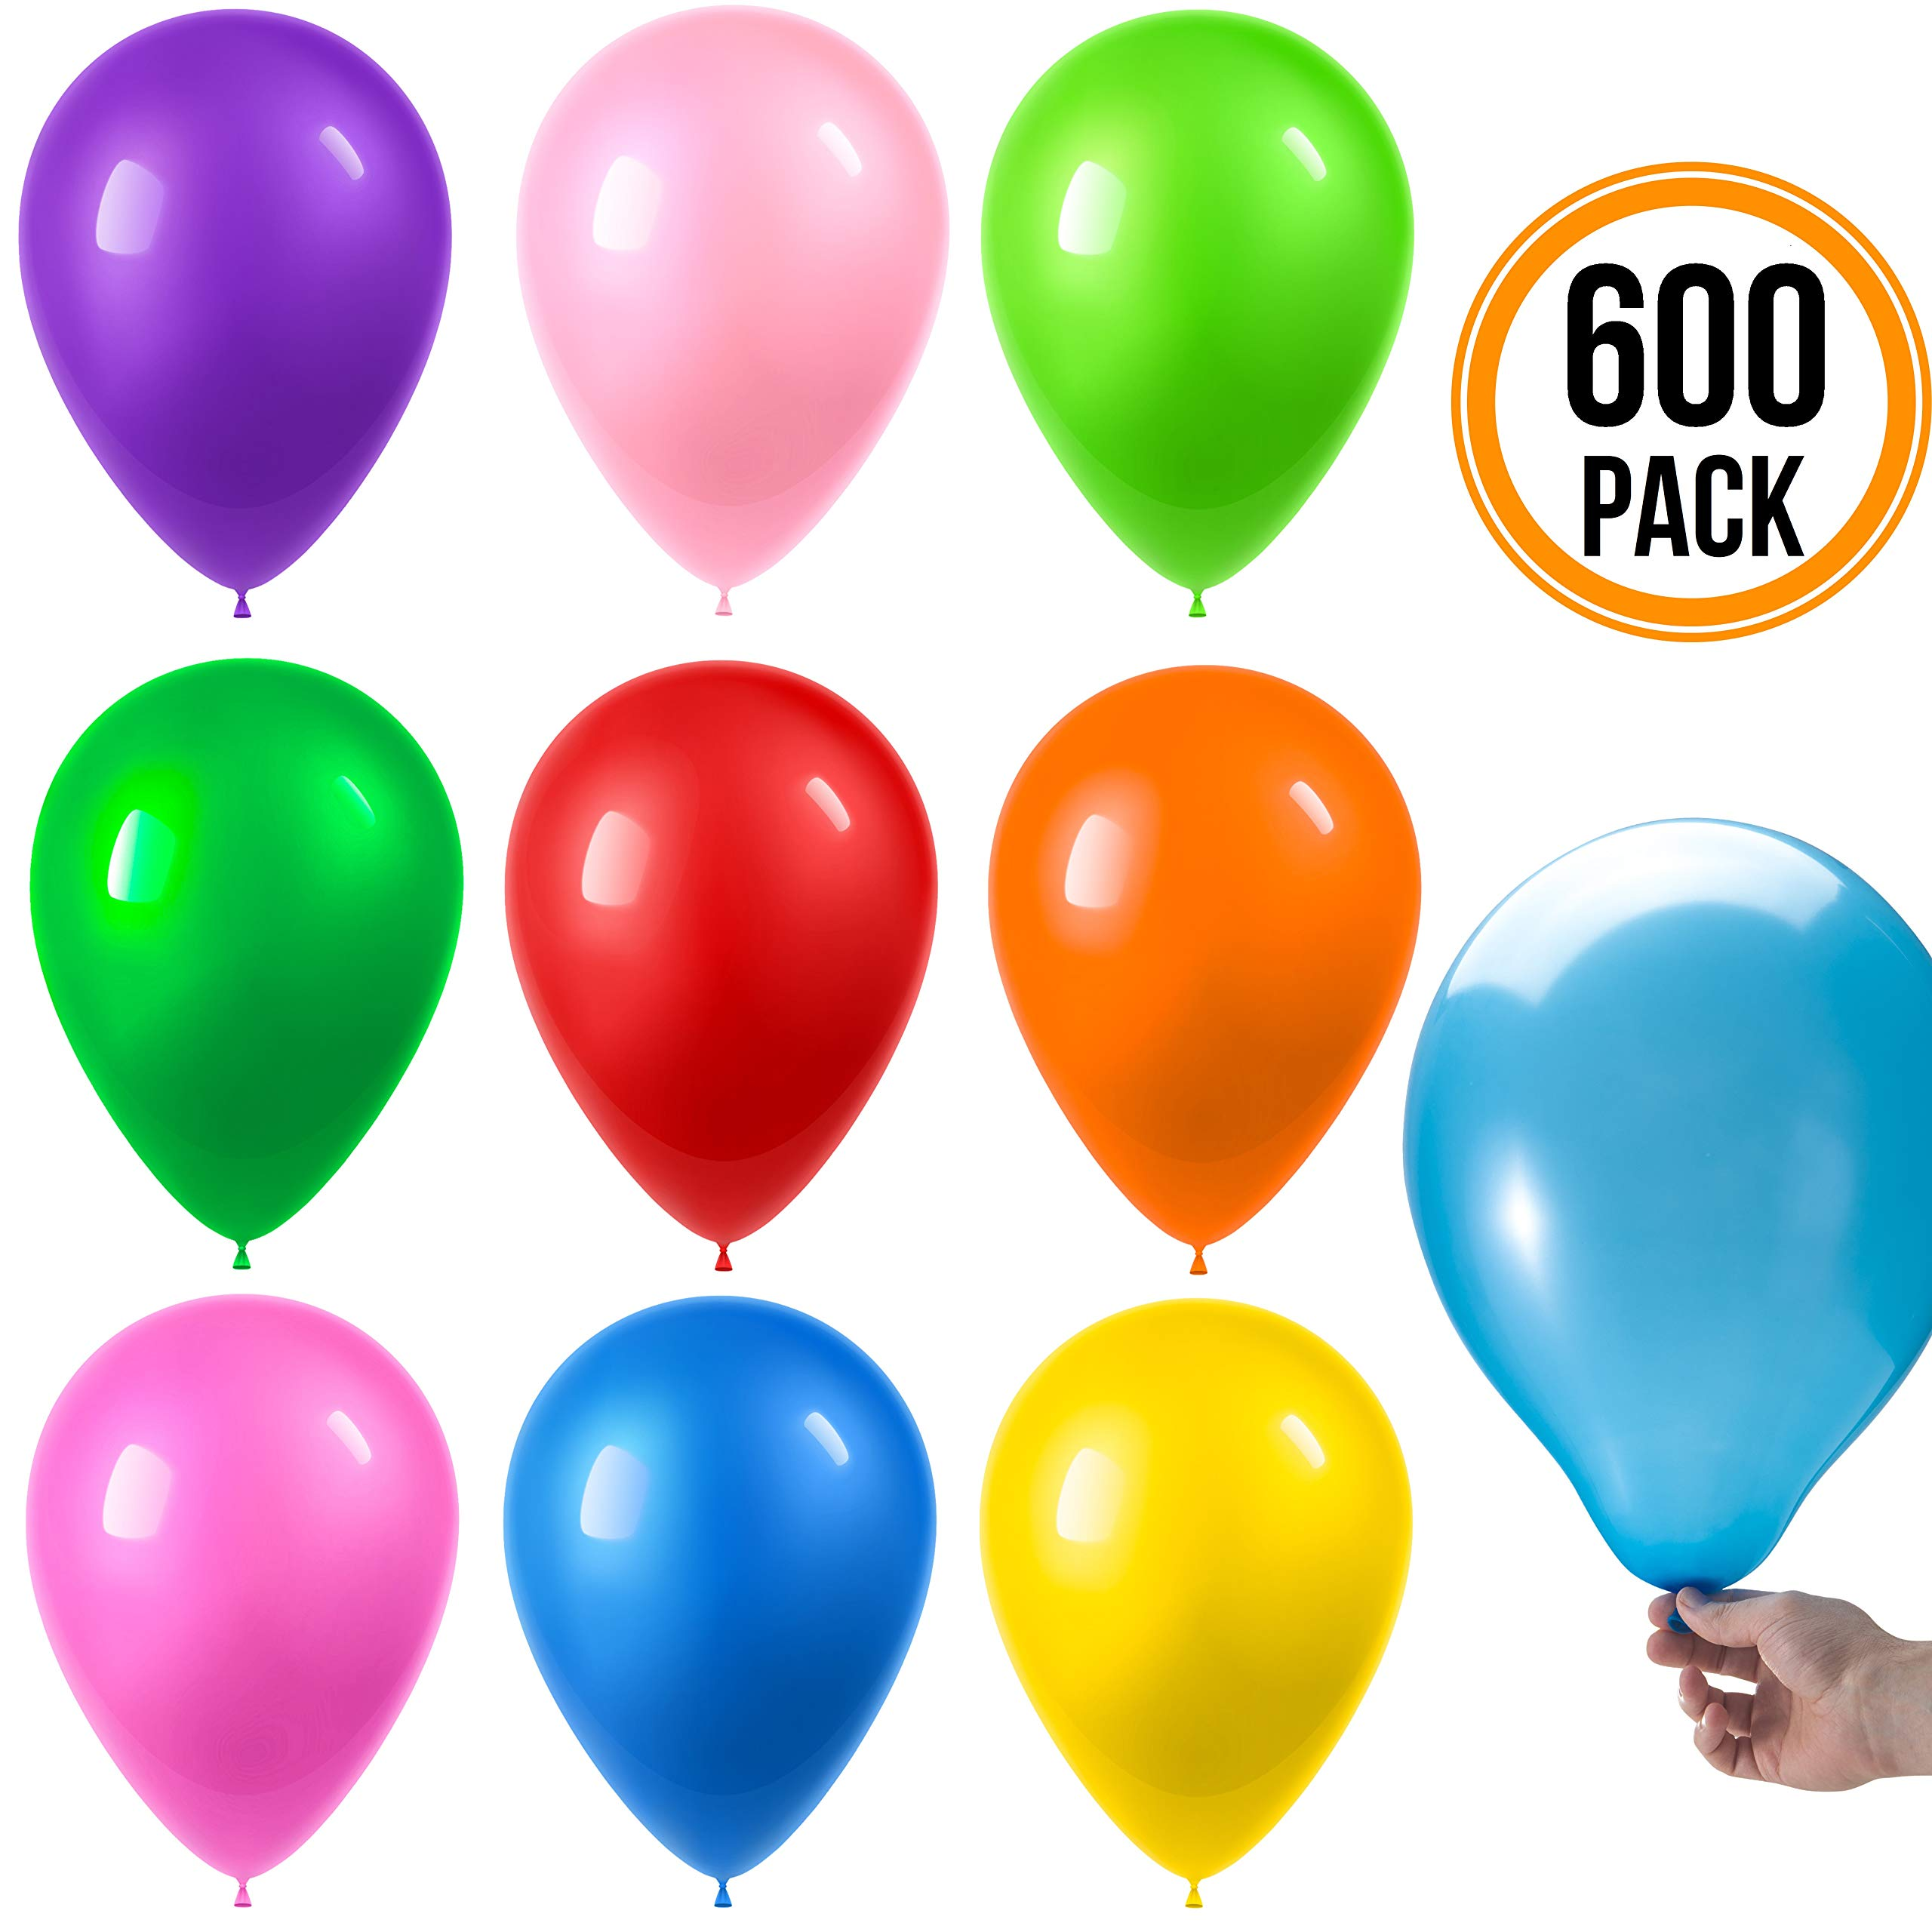 Prextex 600 Party Balloons 12 Inch 10 Assorted Rainbow Colors - Bulk Pack of Strong Latex Balloons for Party Decorations, Birthday Parties Supplies or Arch Decor - Helium Quality by Prextex (Image #2)